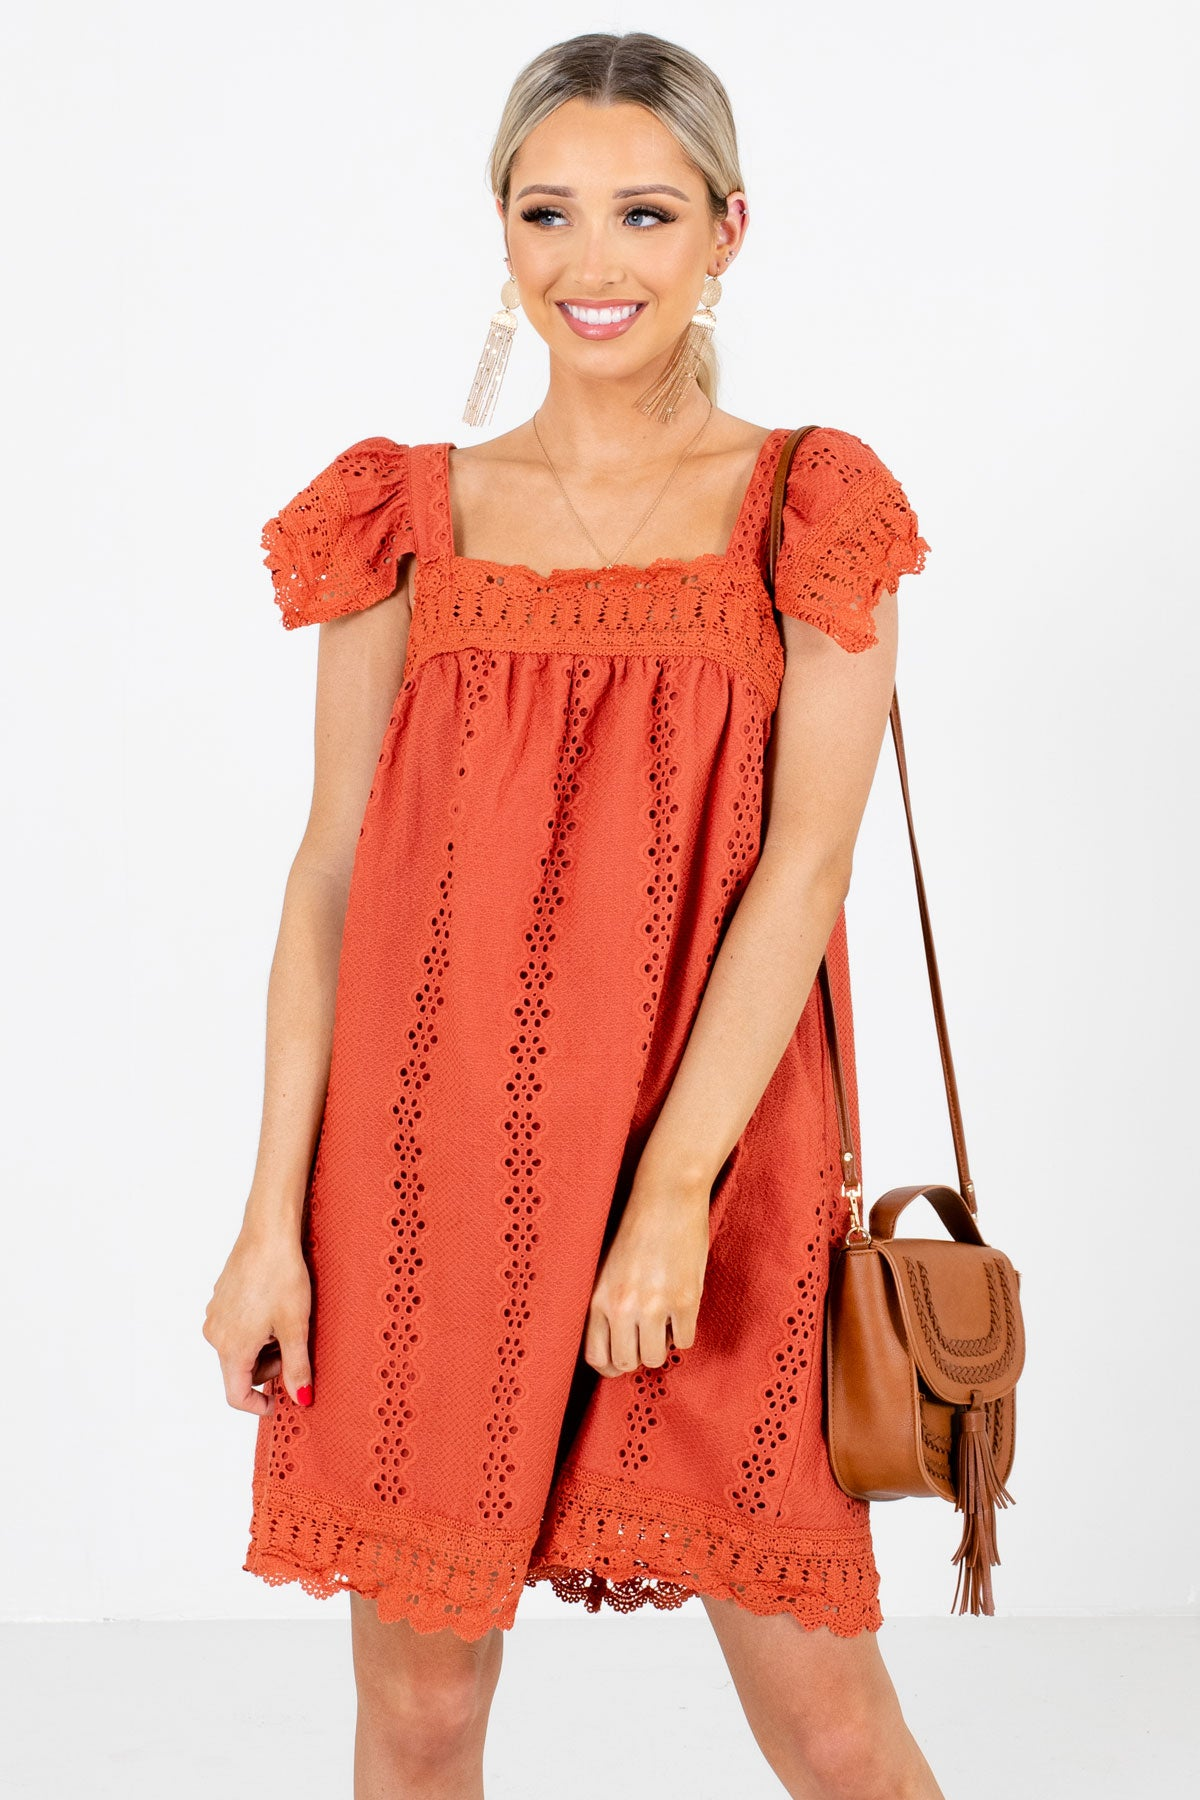 Rust Orange High-Quality Eyelet Material Boutique Mini Dresses for Women